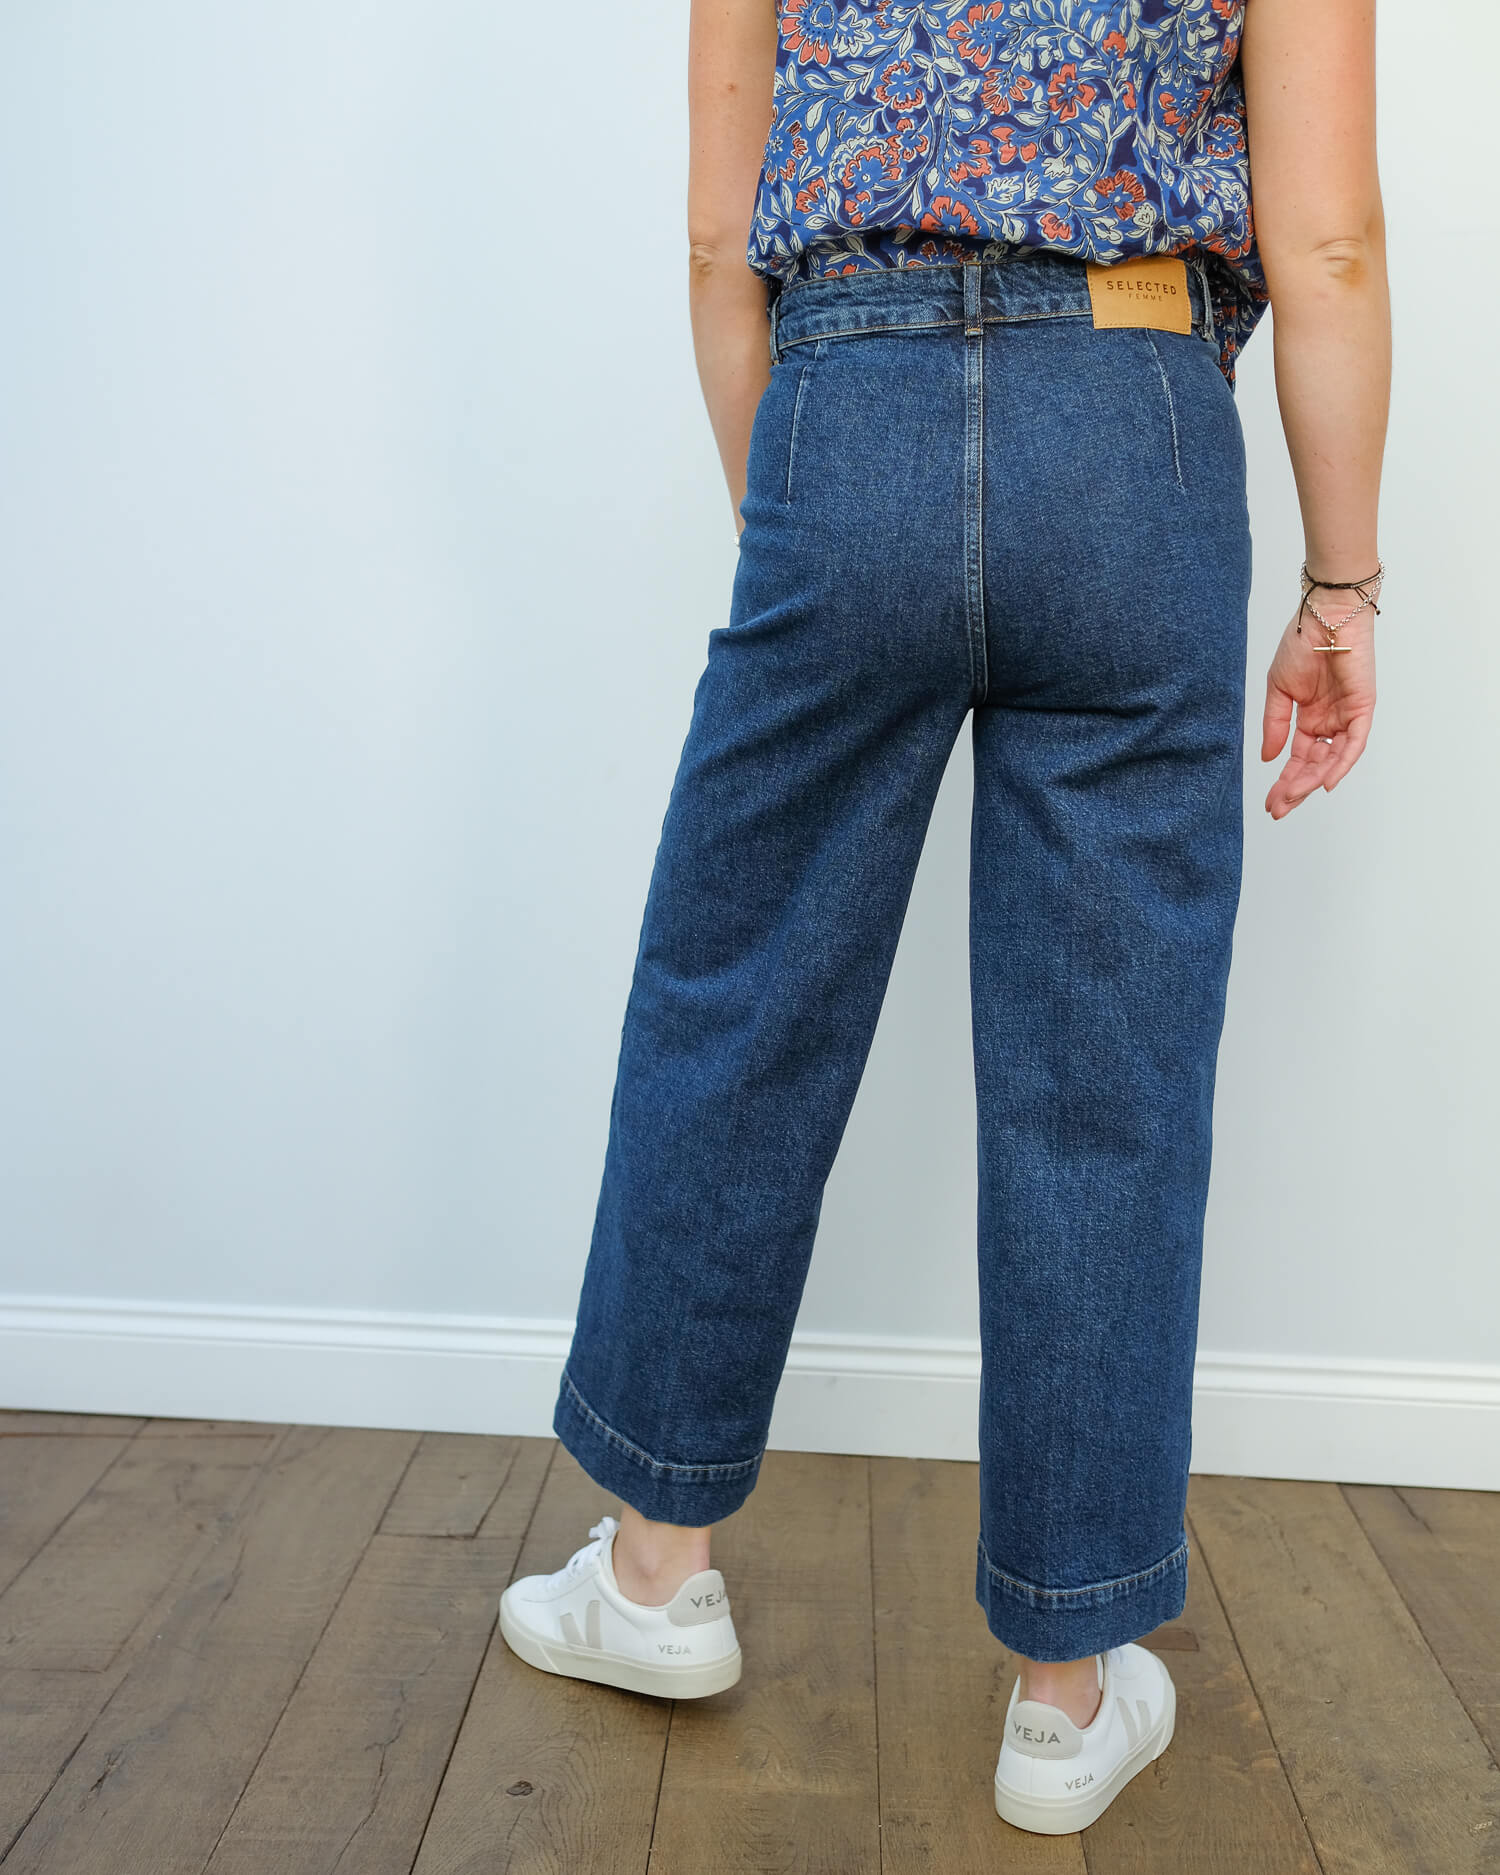 SLF Gene wide crop jeans in blue